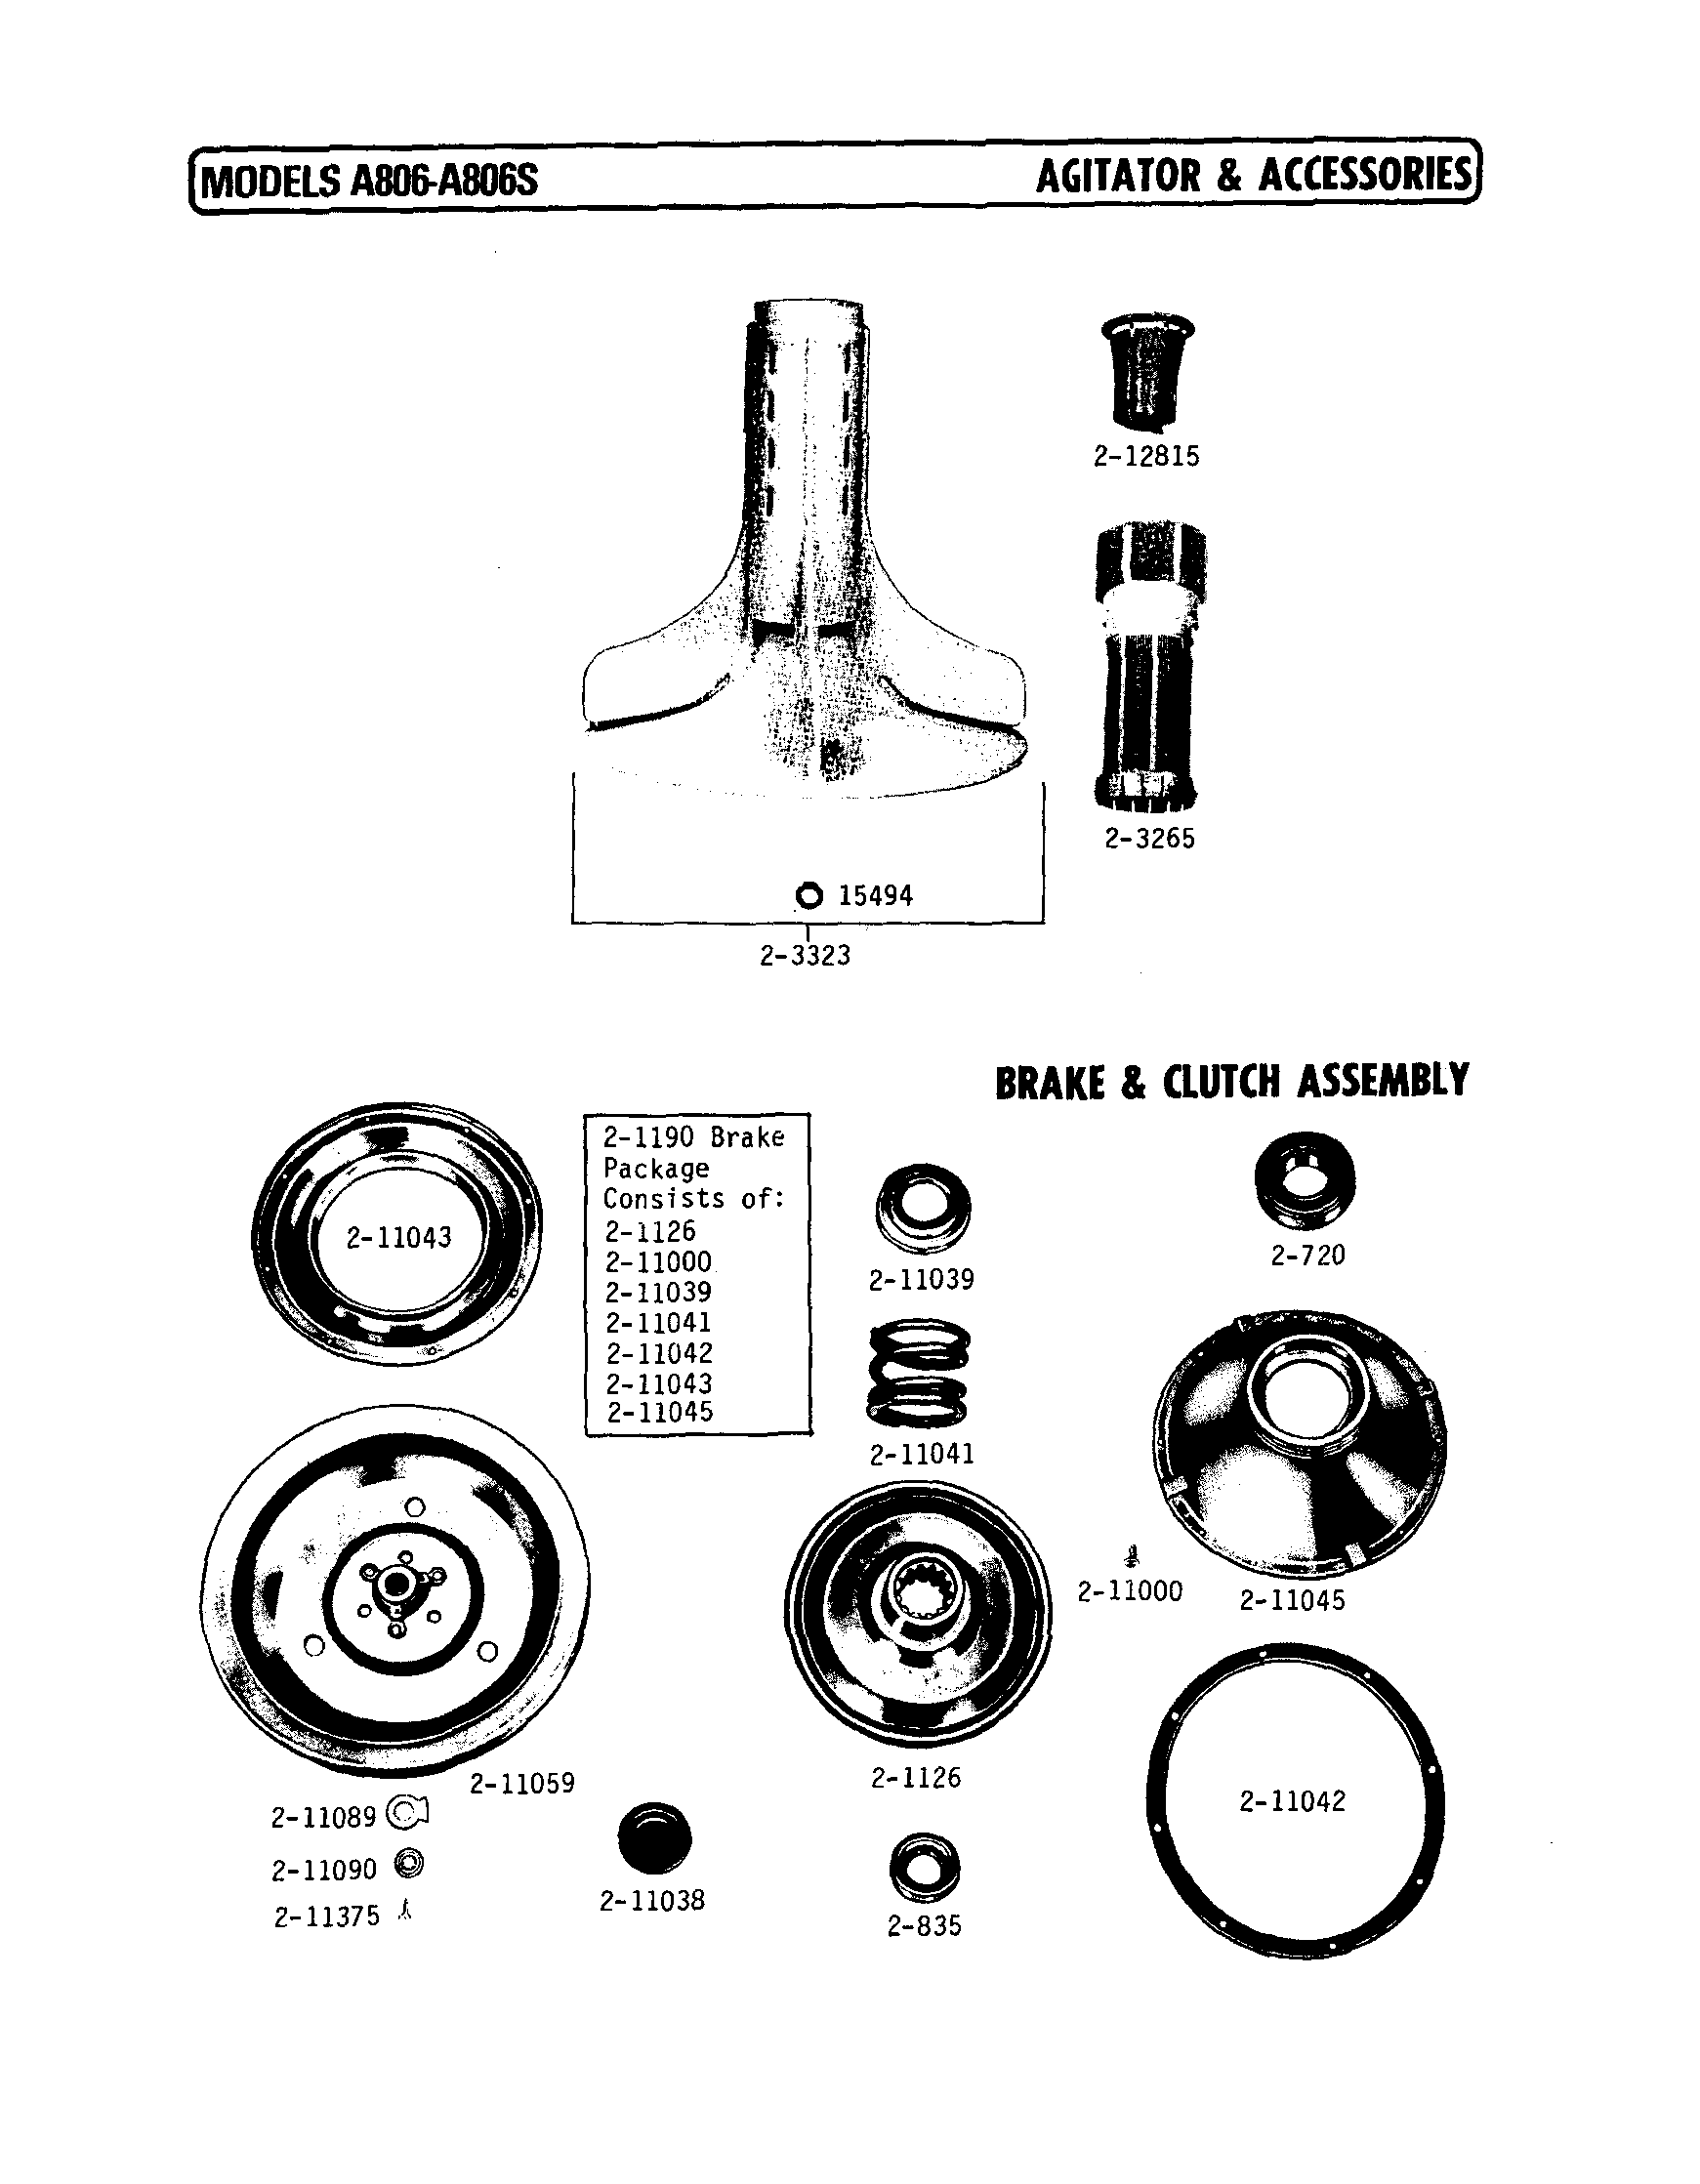 hight resolution of a806 washer agitator and accessories parts diagram